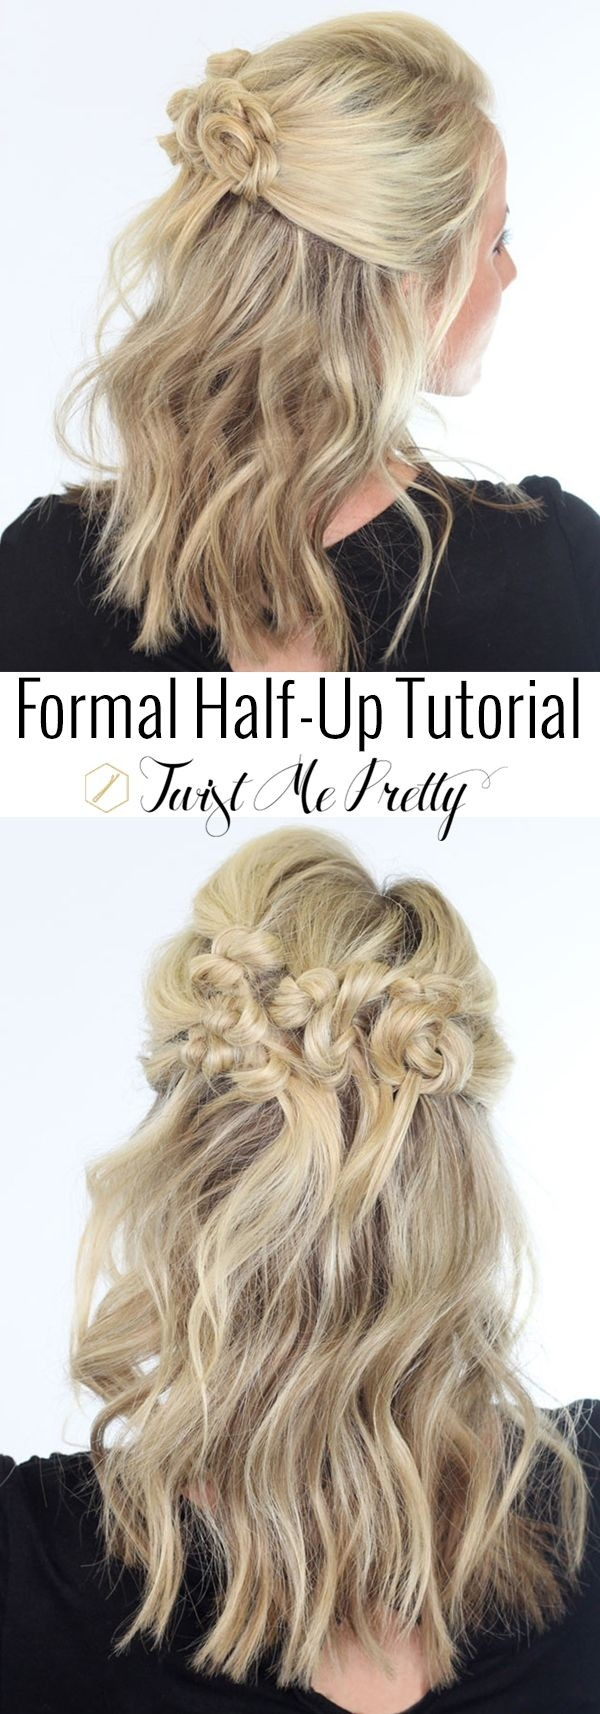 Pretty Half-up Hair Style Tutorial - Medium Hairstyle Ideas